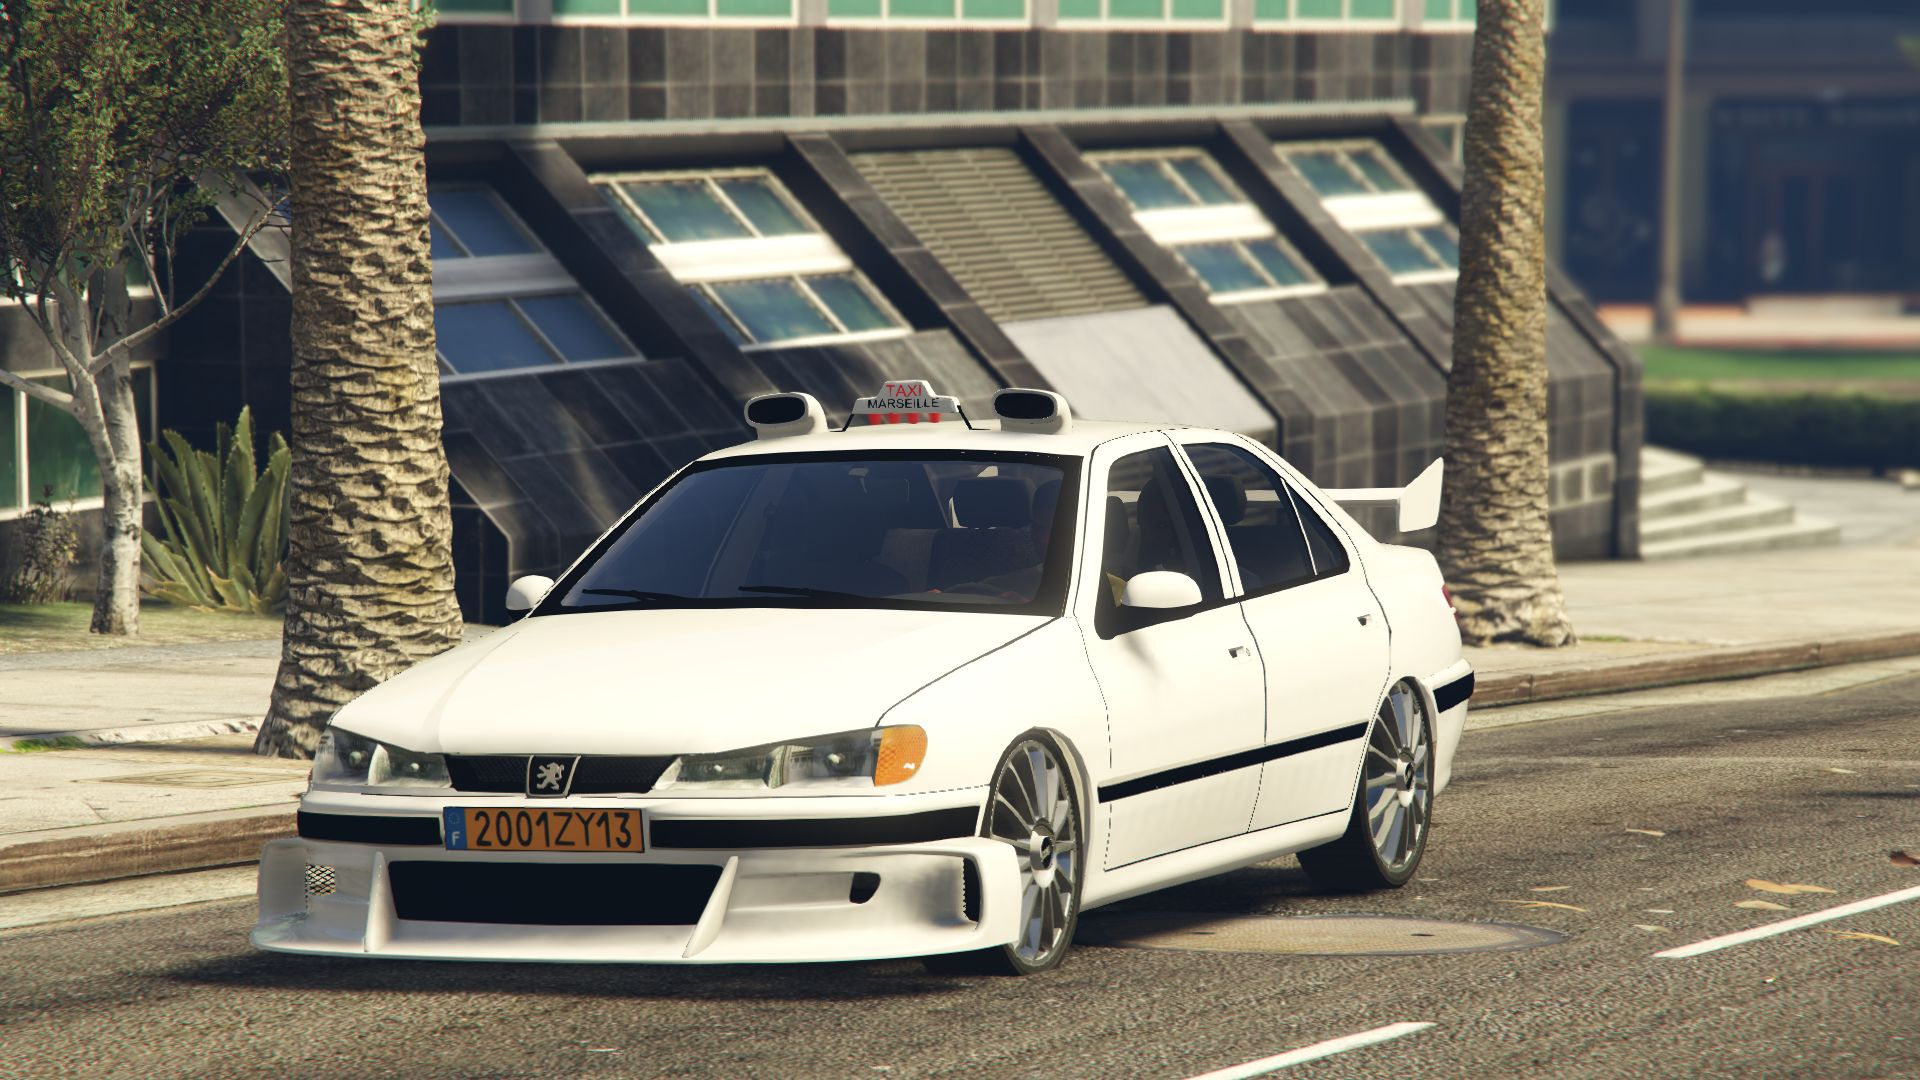 taxi 2 peugeot 406 v hicules t l chargements gta 5. Black Bedroom Furniture Sets. Home Design Ideas